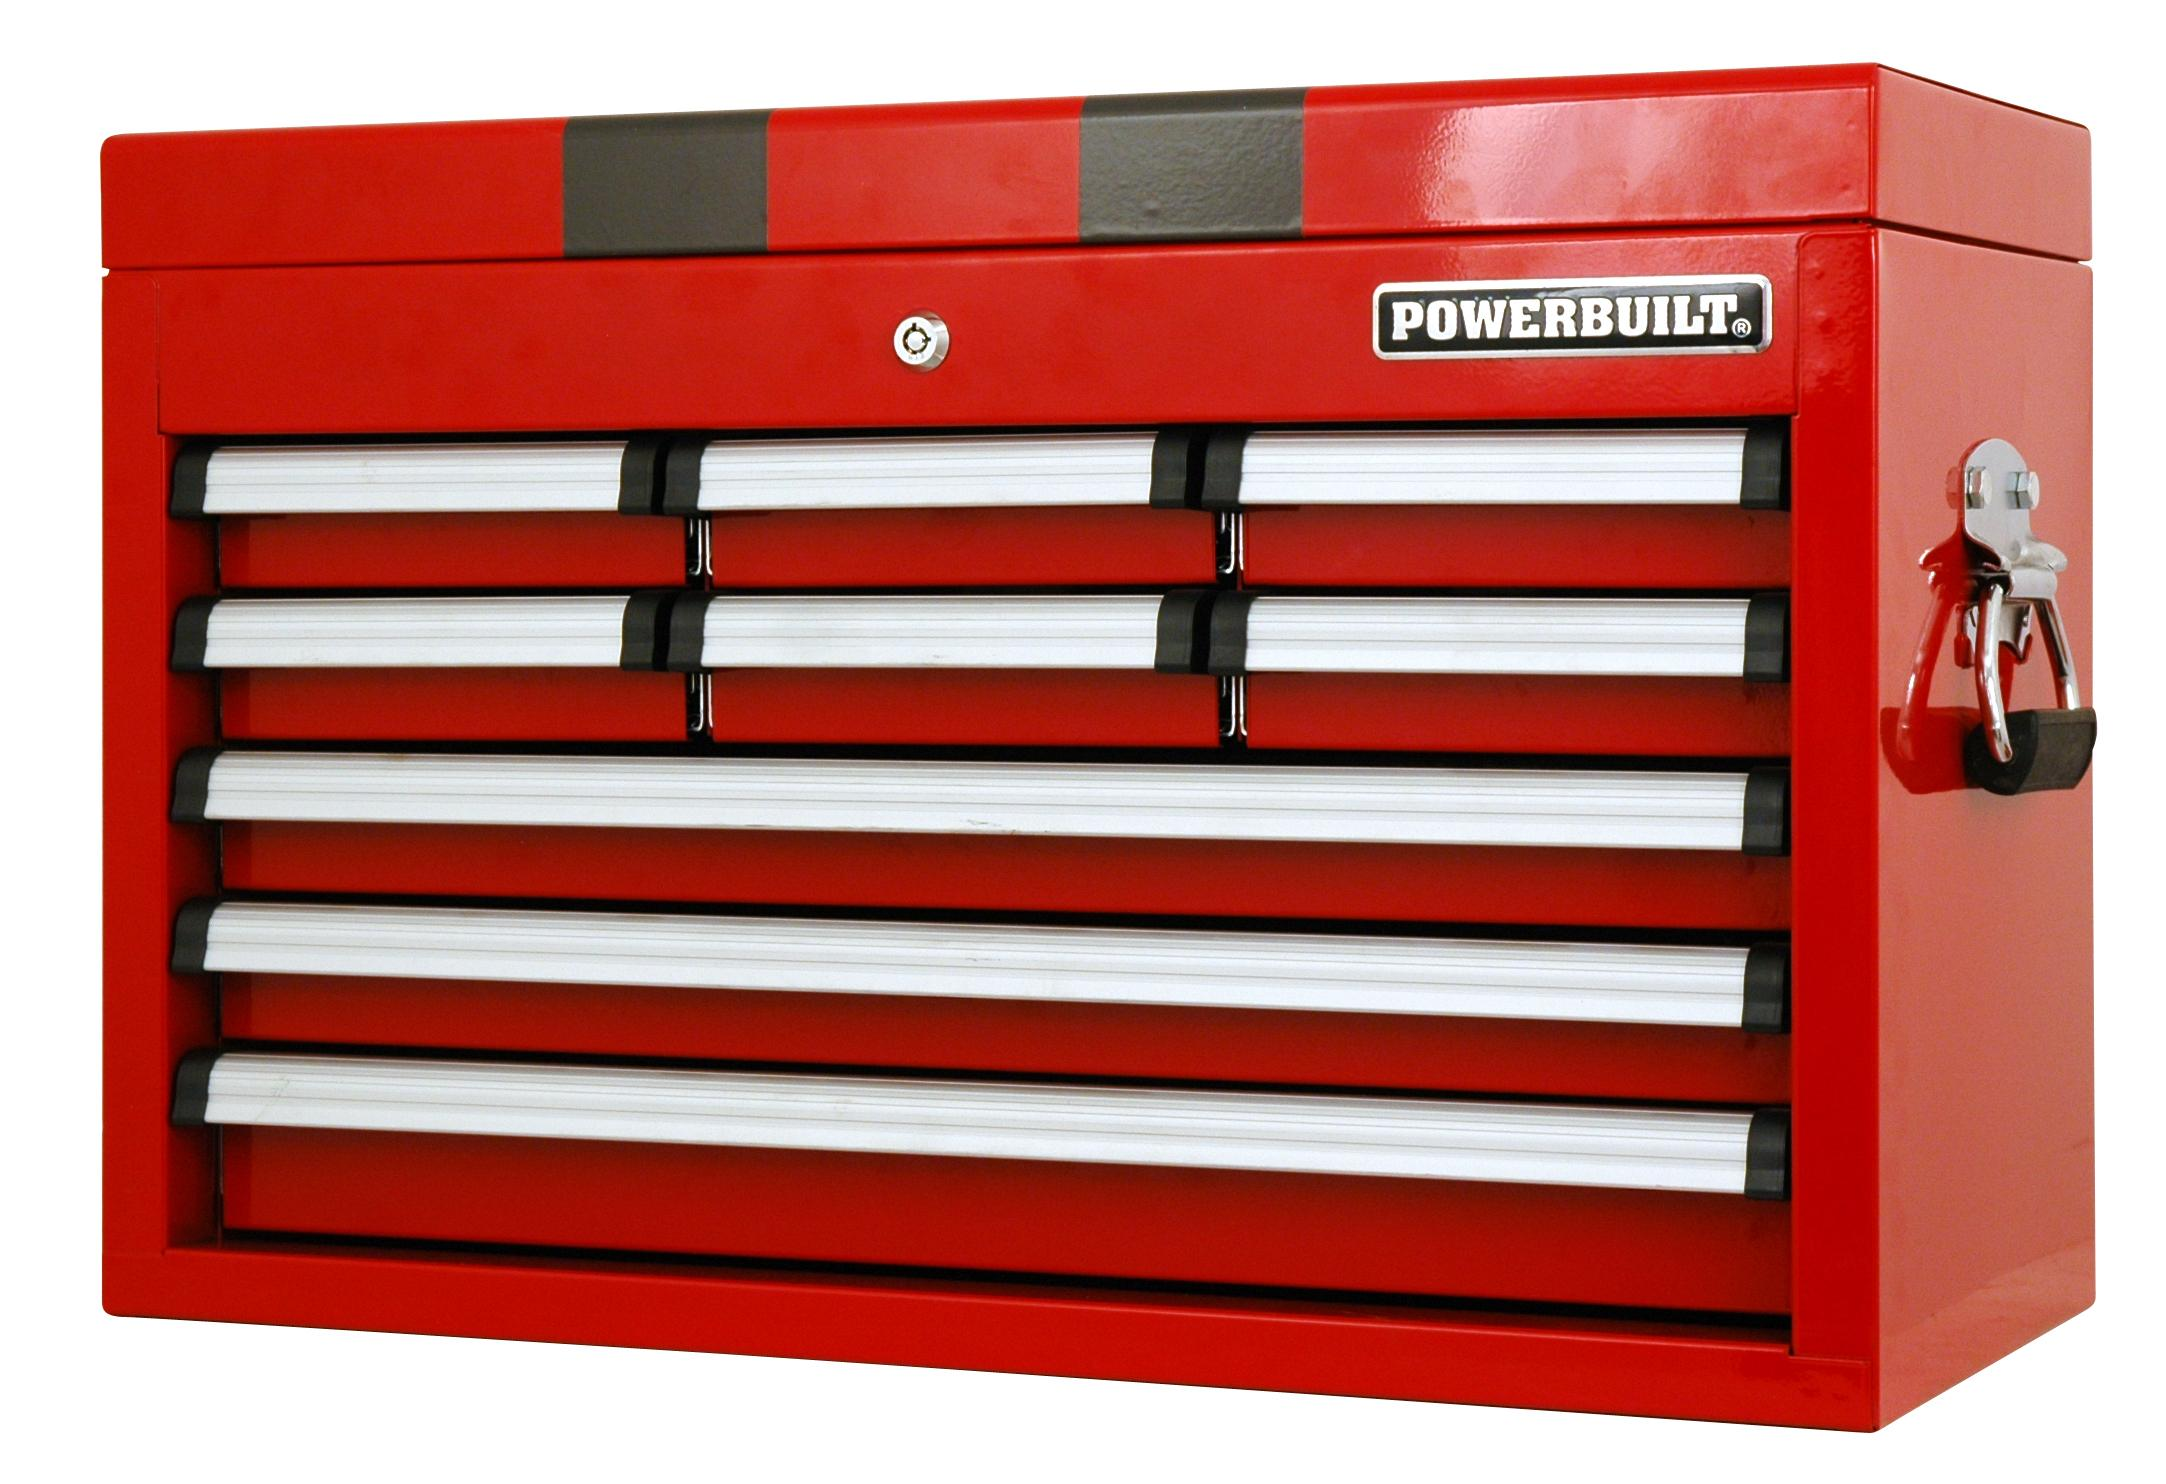 Powerbuilt Tool Chest - Racing Series 9 drawer